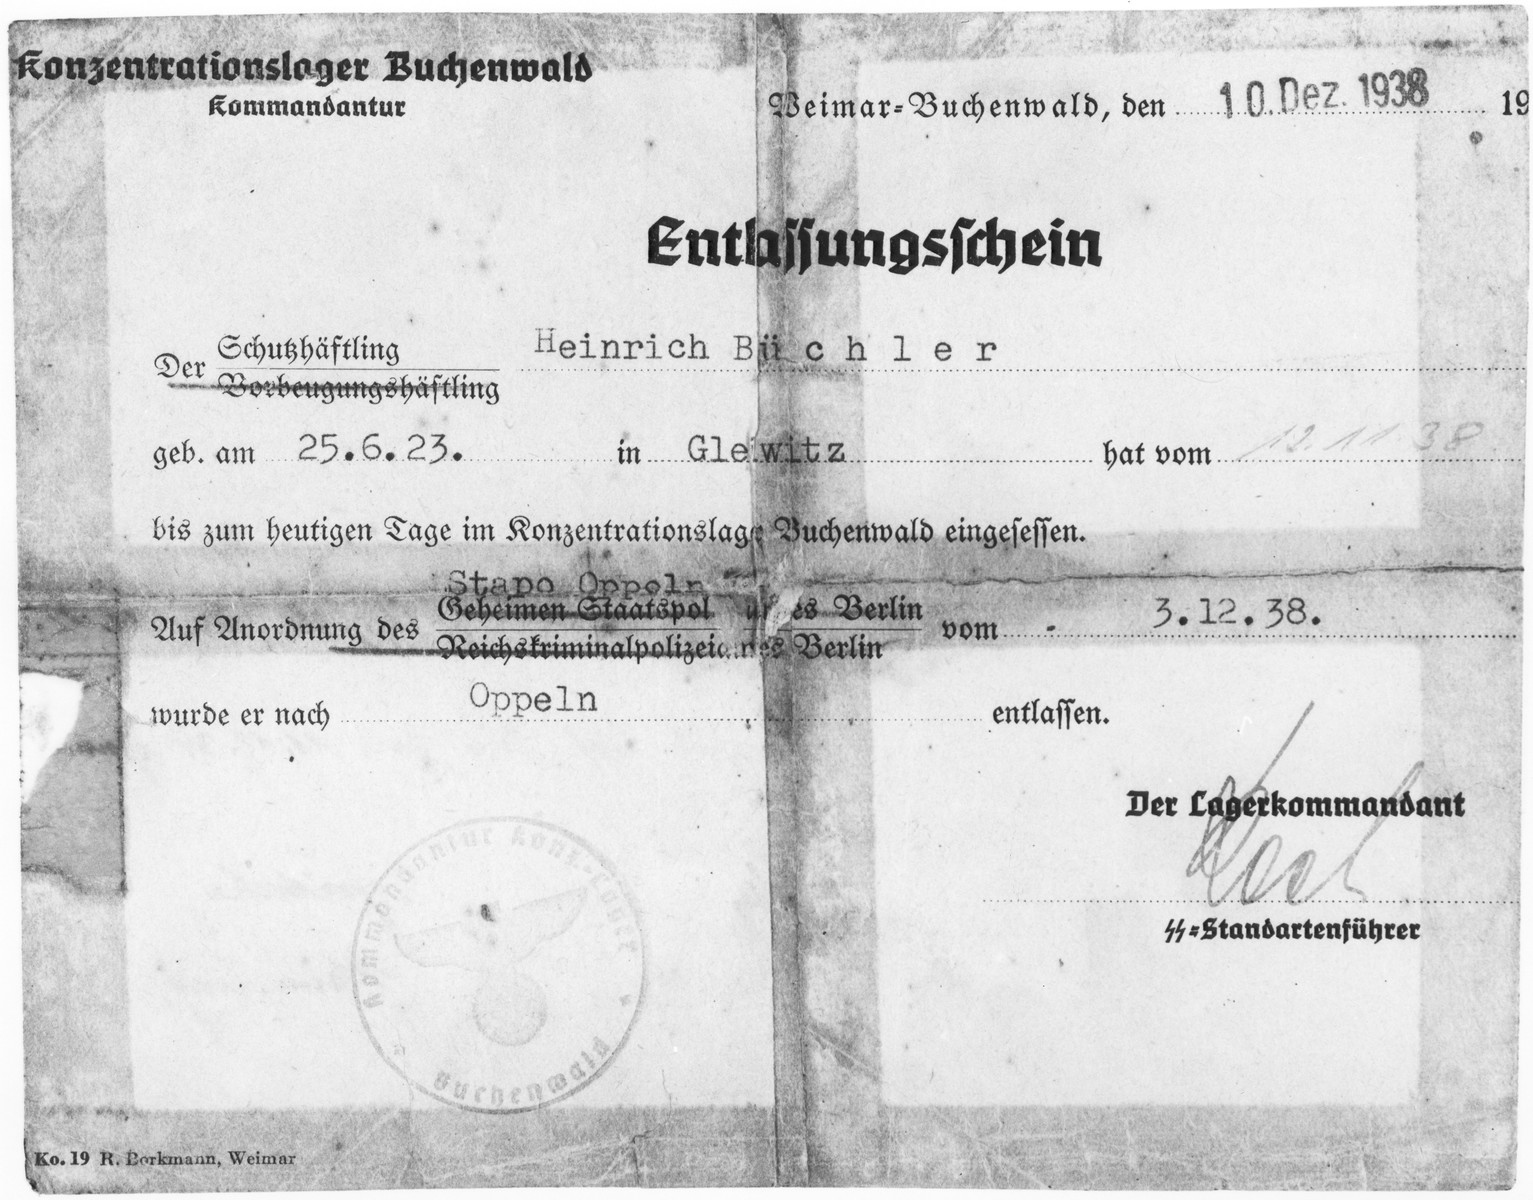 Release certificate issued to Heinrich Büchler.  The document states that Heinrich Büchler was born on June 25, 1923 in Gleiwitz and was sent to Buchenwald on November 12, 1938.  He was released to protective custody in Oppeln.  The document was signed by the commadant of Buchenwald.